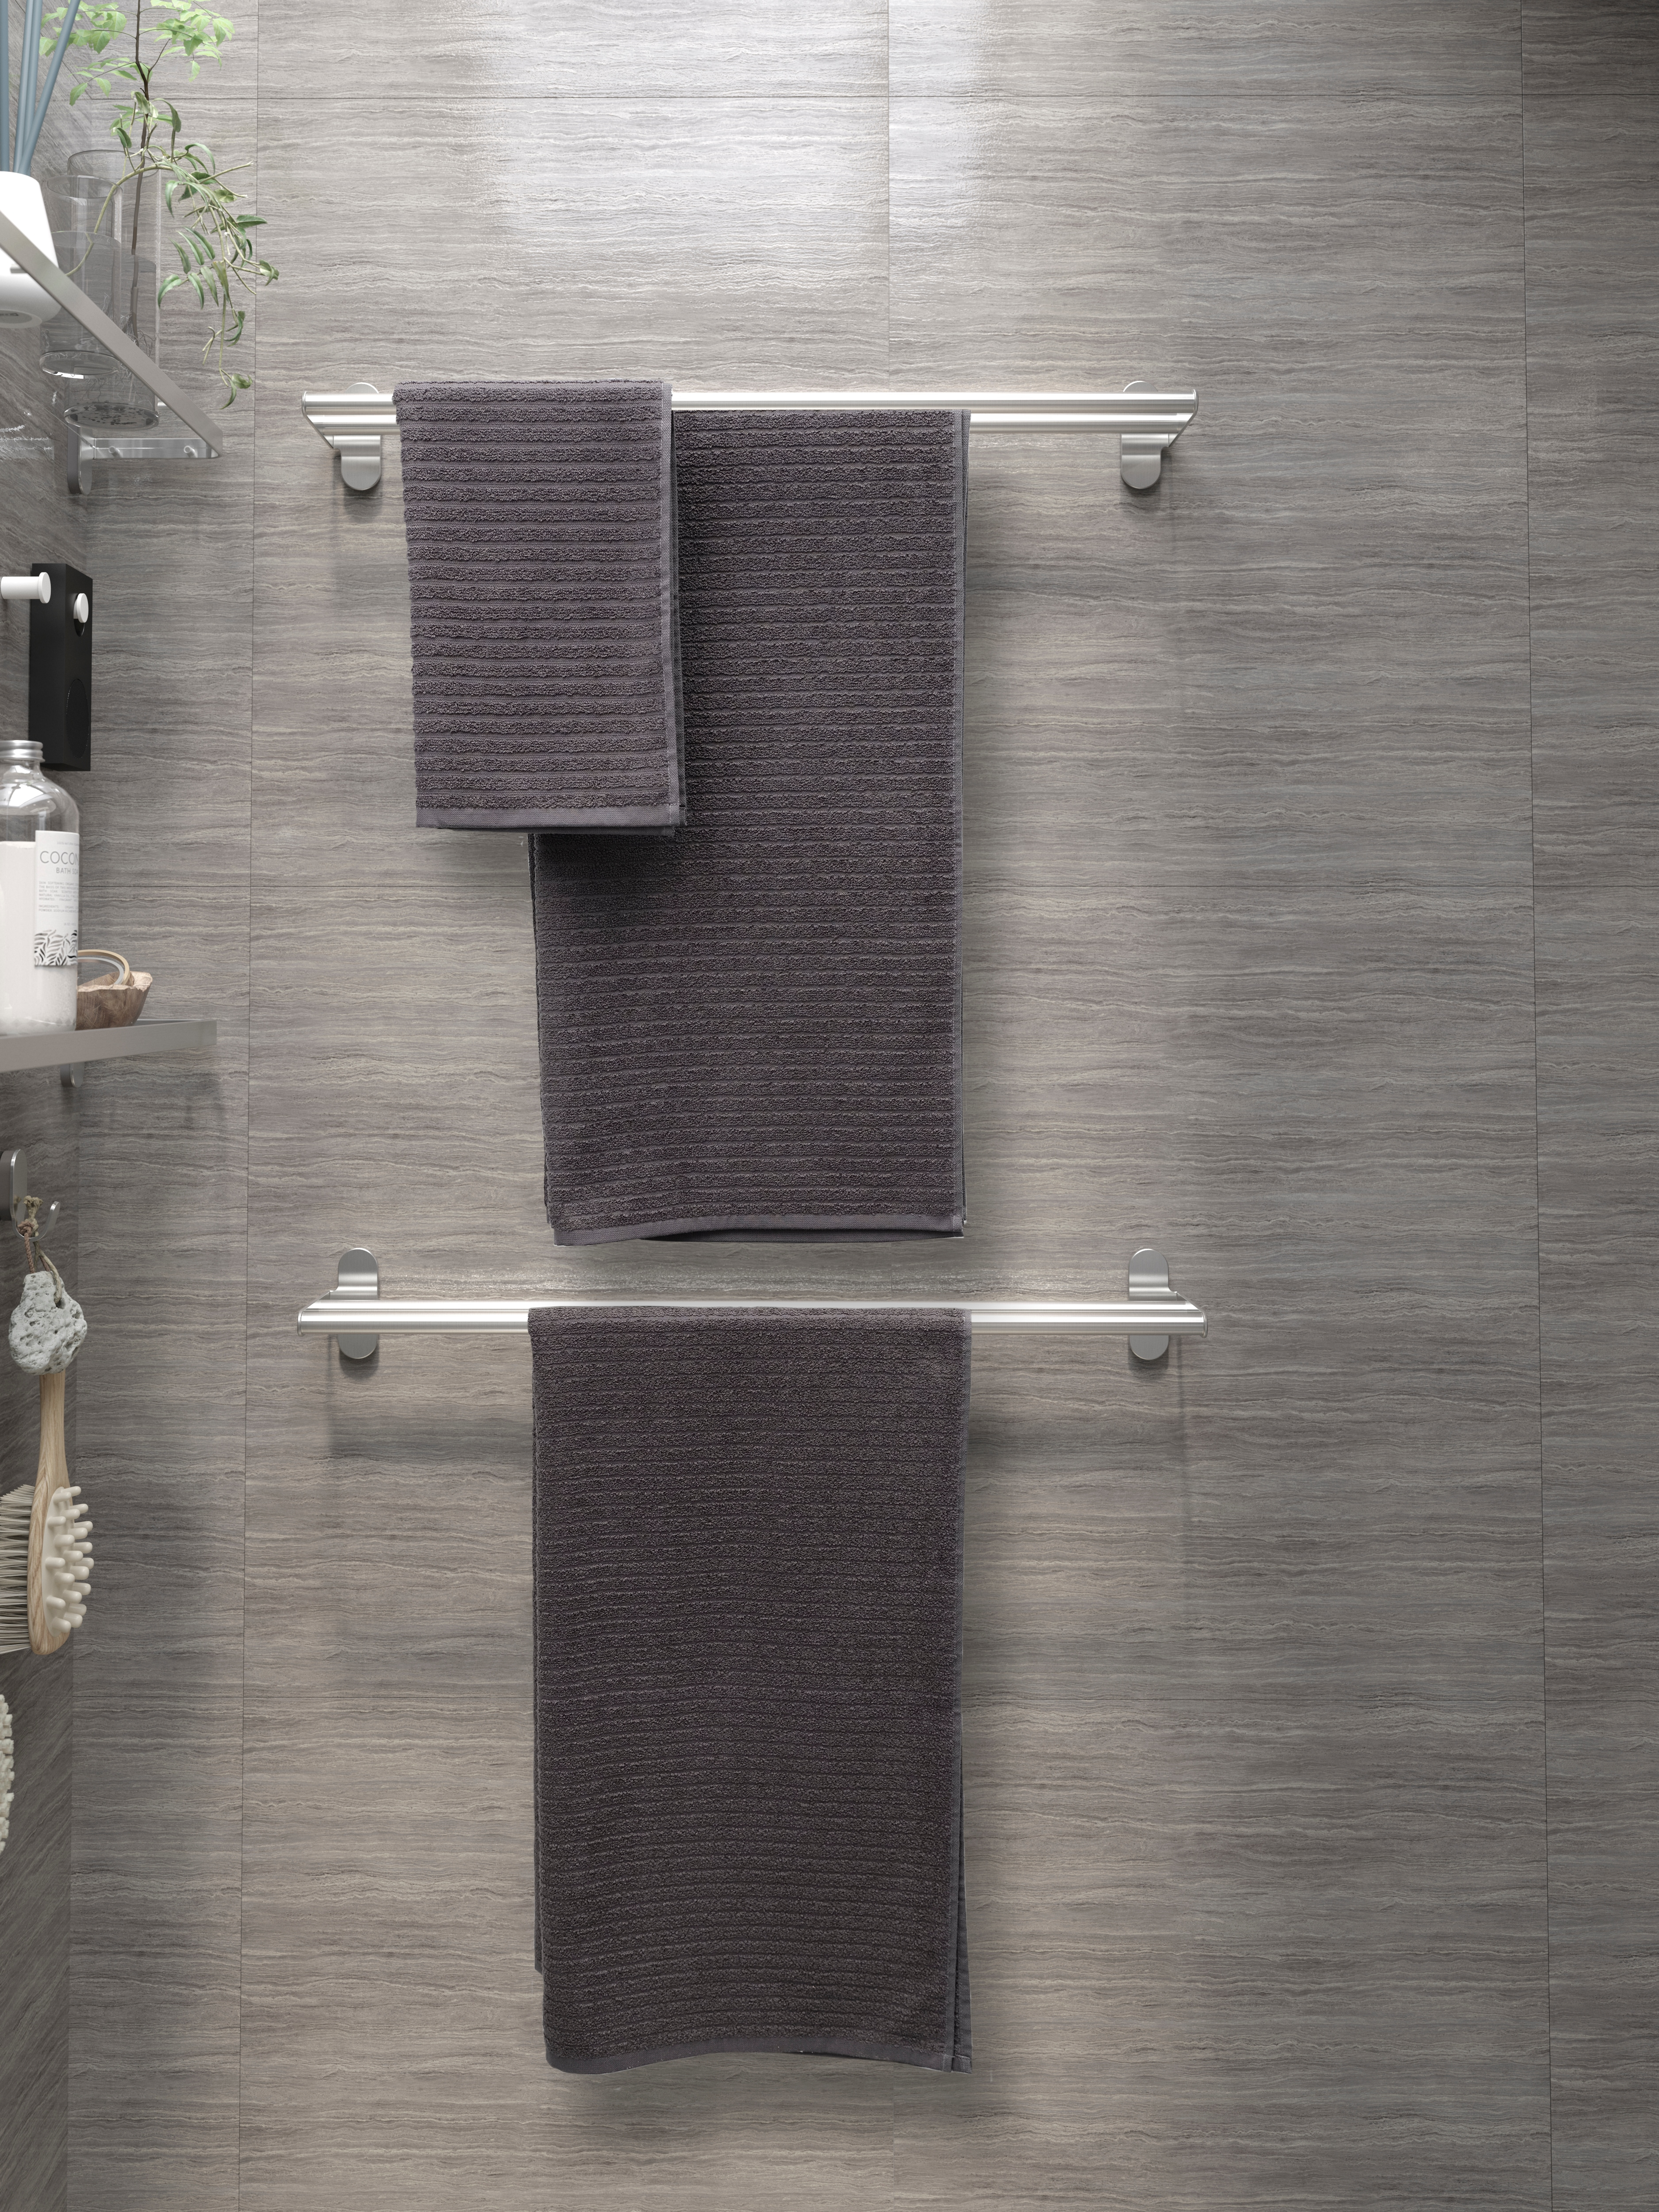 Bathroom with textured tiles, towel rails, hand and bath towels, glass shelf, hooks, clear vase, toiletries, shower brush.